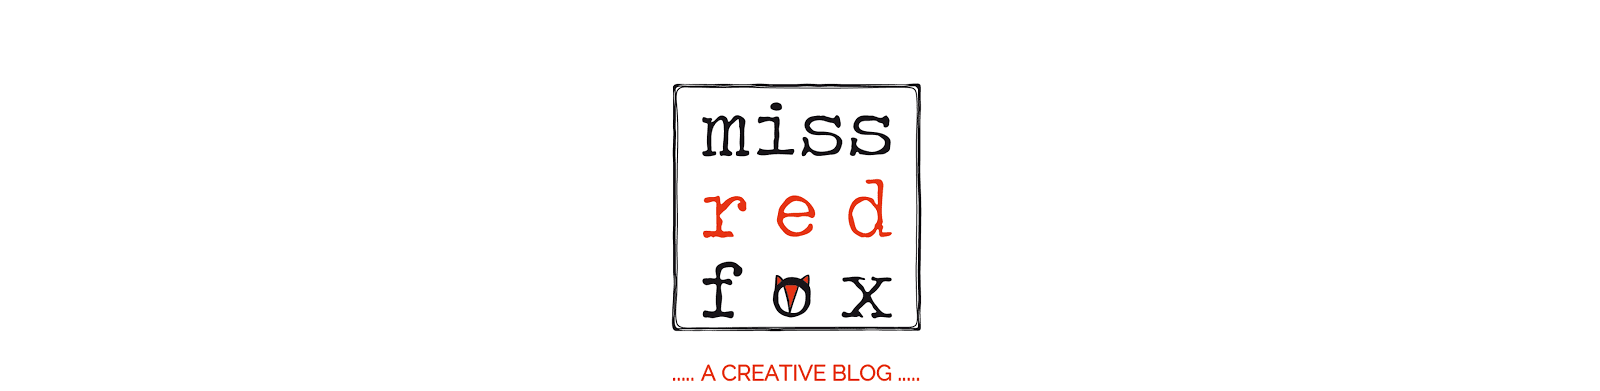 miss red fox - A creative blog with smart DIYs, beautiful photography, occasional recipes, travel stories. A source of ideas for all crafty people! Let yourself be inspired! /// Ein kreativer Blog mit originellen DIYs, schöne Fotografie, gelegentliche Rezepte und Reiseberichte. Eine Quelle von Ideen für kreative Menschen! Lasst Euch inspirieren!